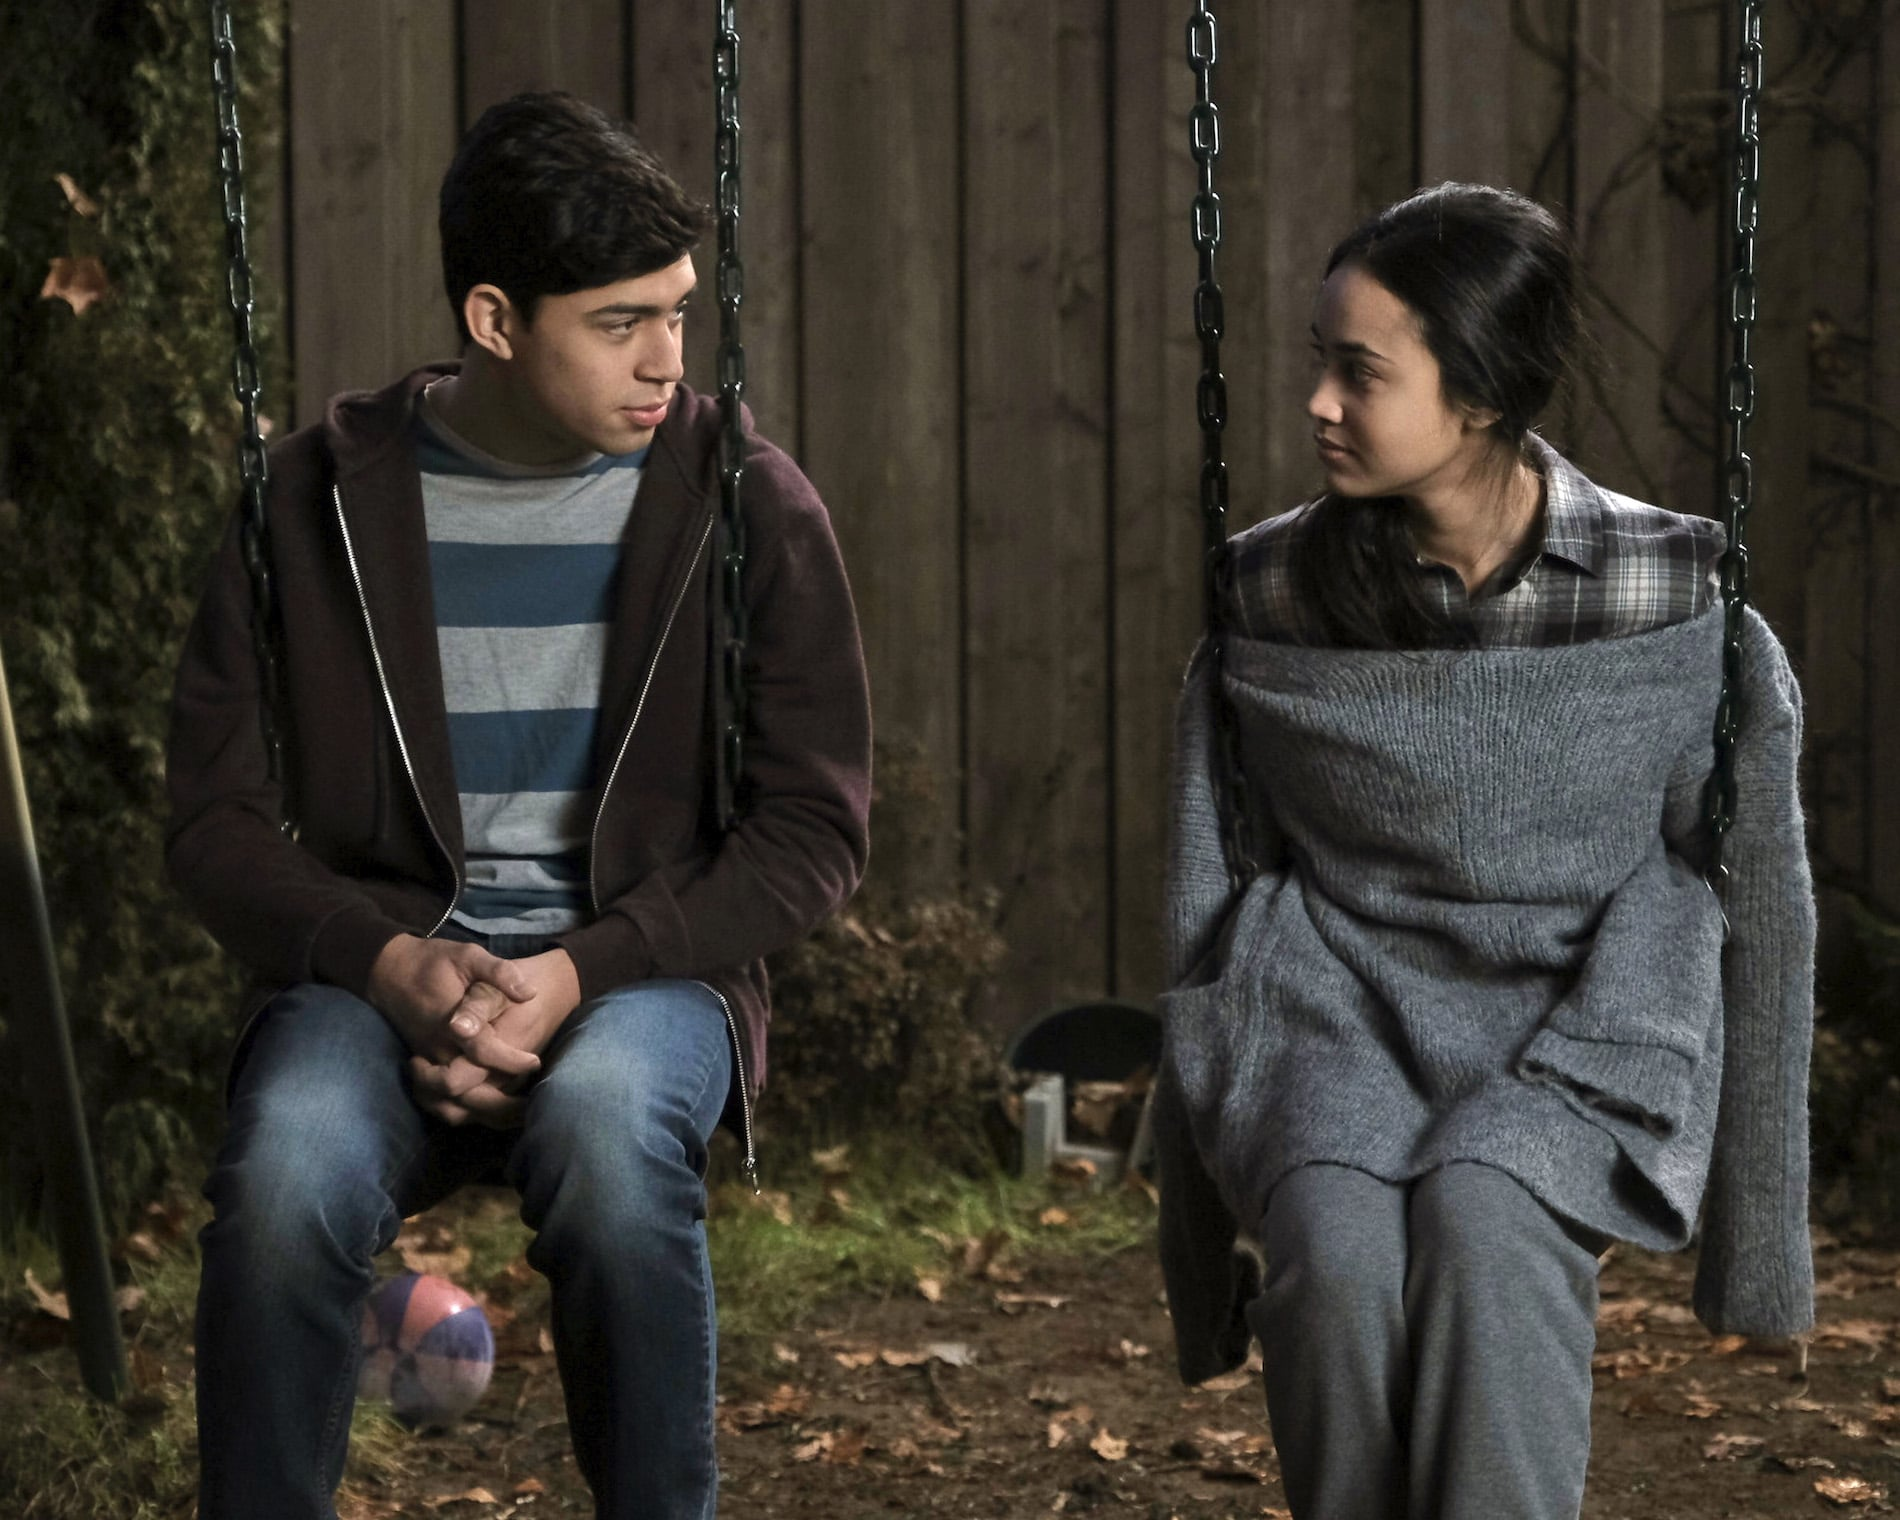 REVIEW: Focusing on the Aftermath of a Deportation, 'Party of Five' Reboot Shows Promise